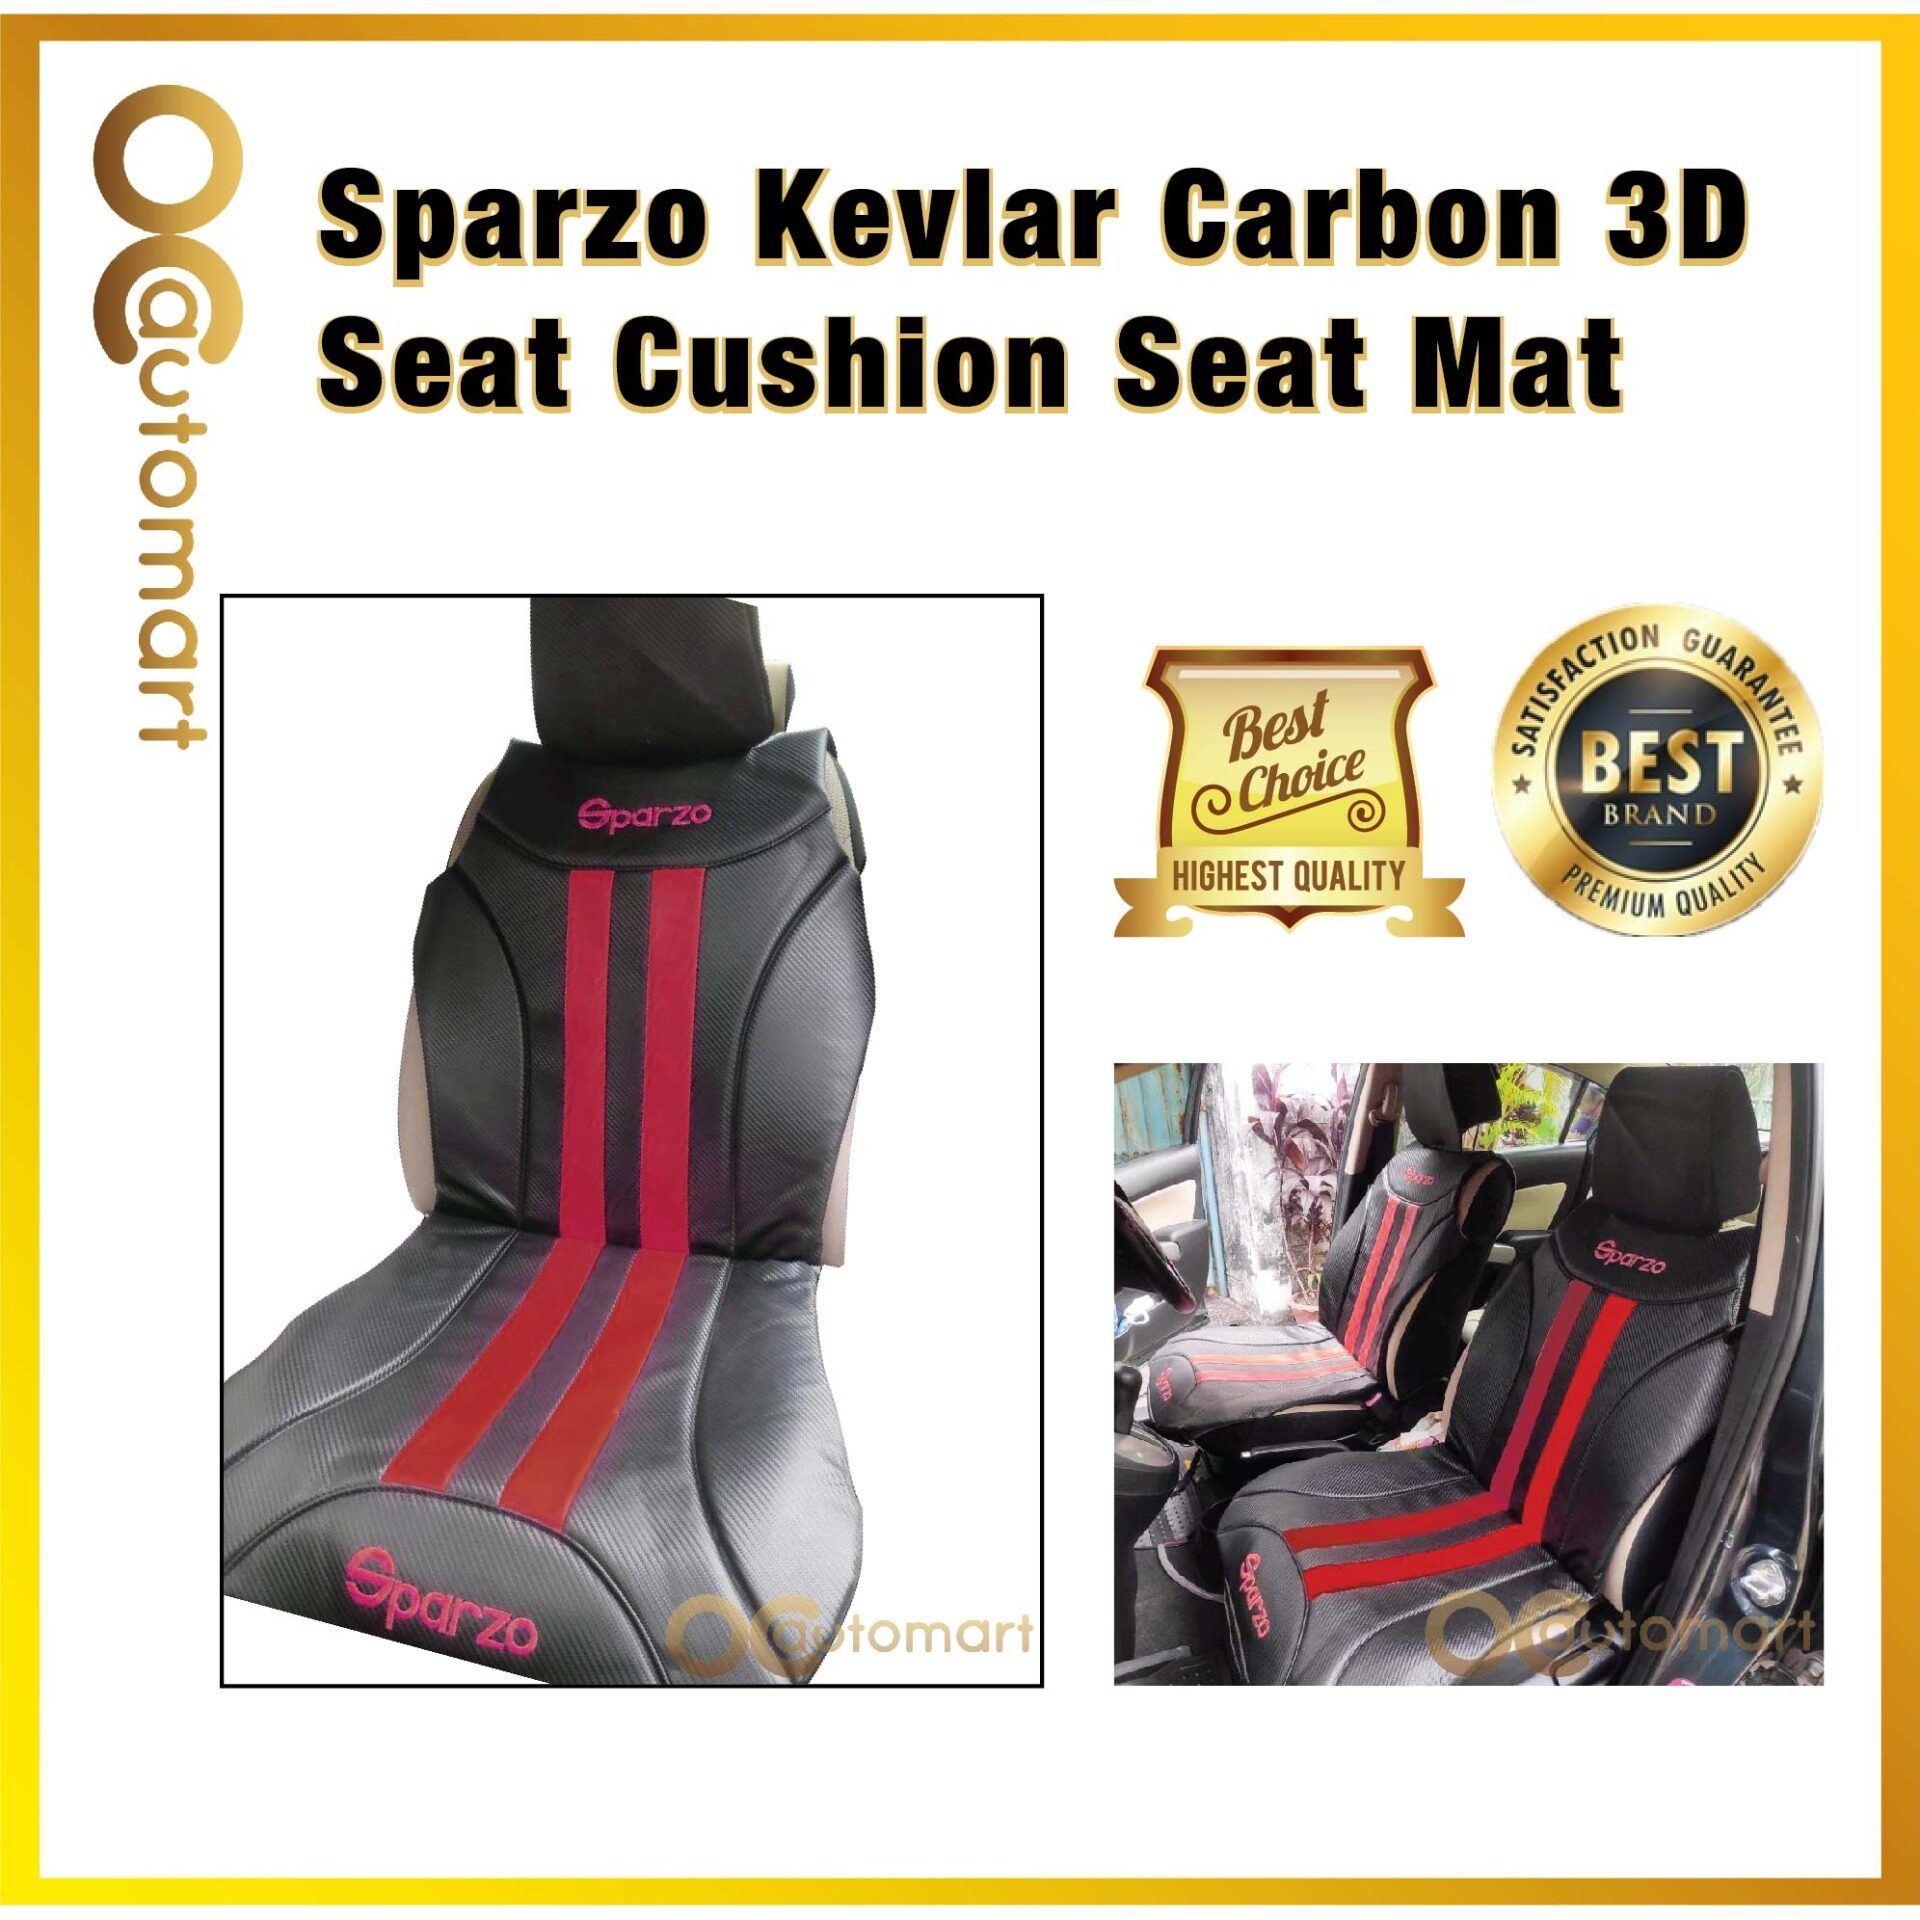 SPARZO Kevlar Seat Cushion Seat Mat Carbon Design 1 Pc MADE IN THAILAND (BLACK+RED) For PROTON PERSONA YR2016